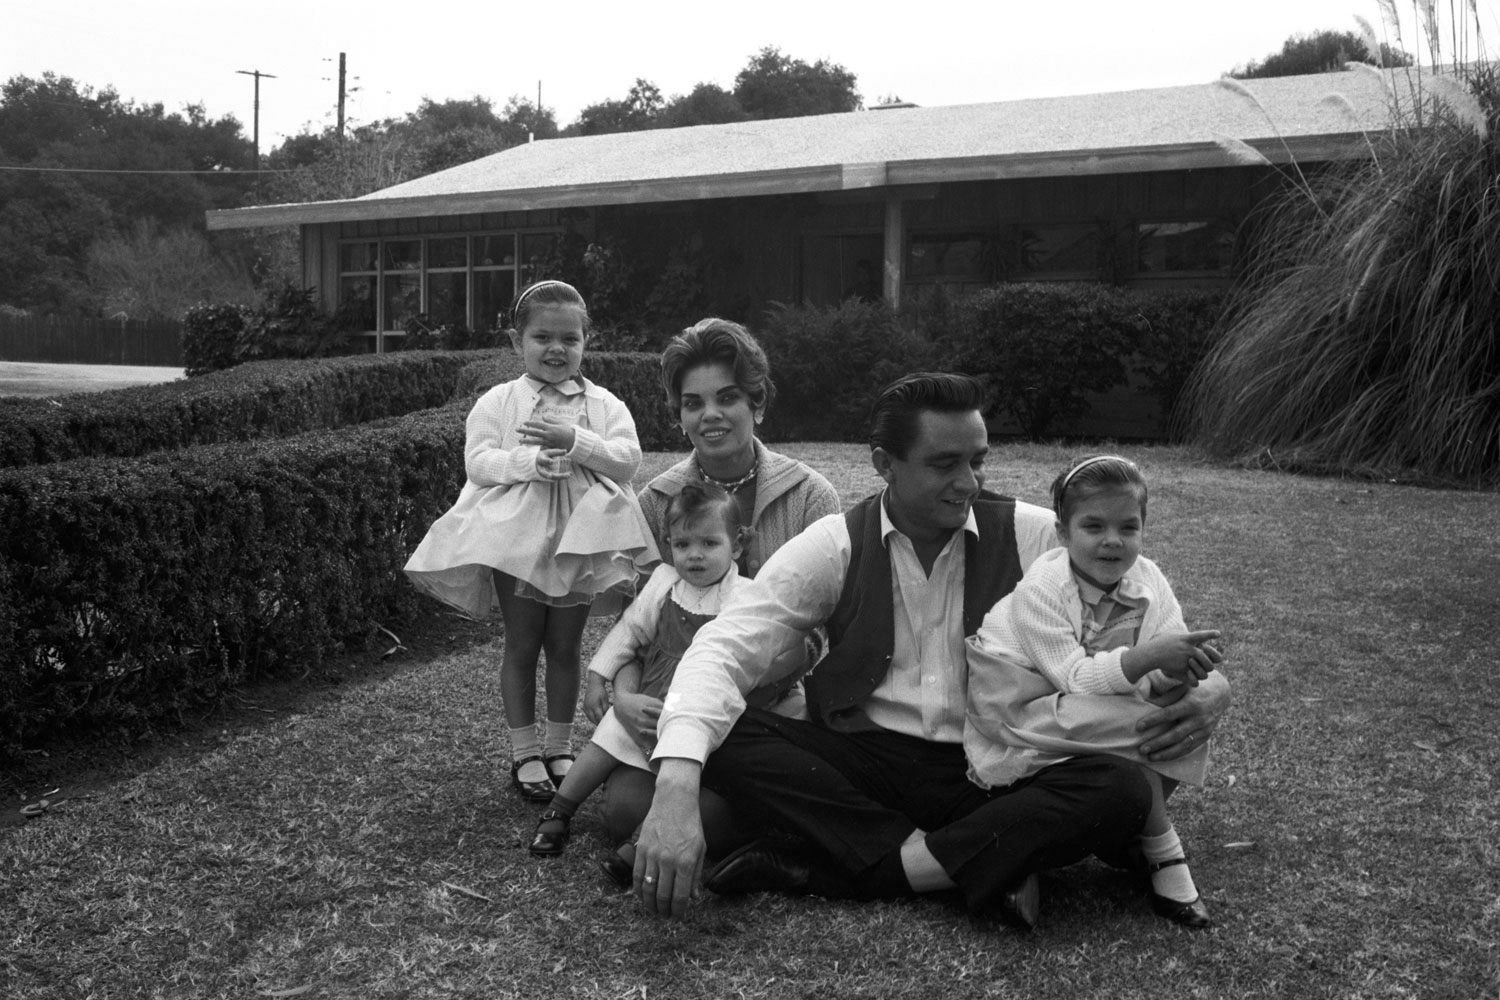 At home in California with first wife Vivian Liberto and daughters Rosanne, Kathy and Cindy, January 1960.